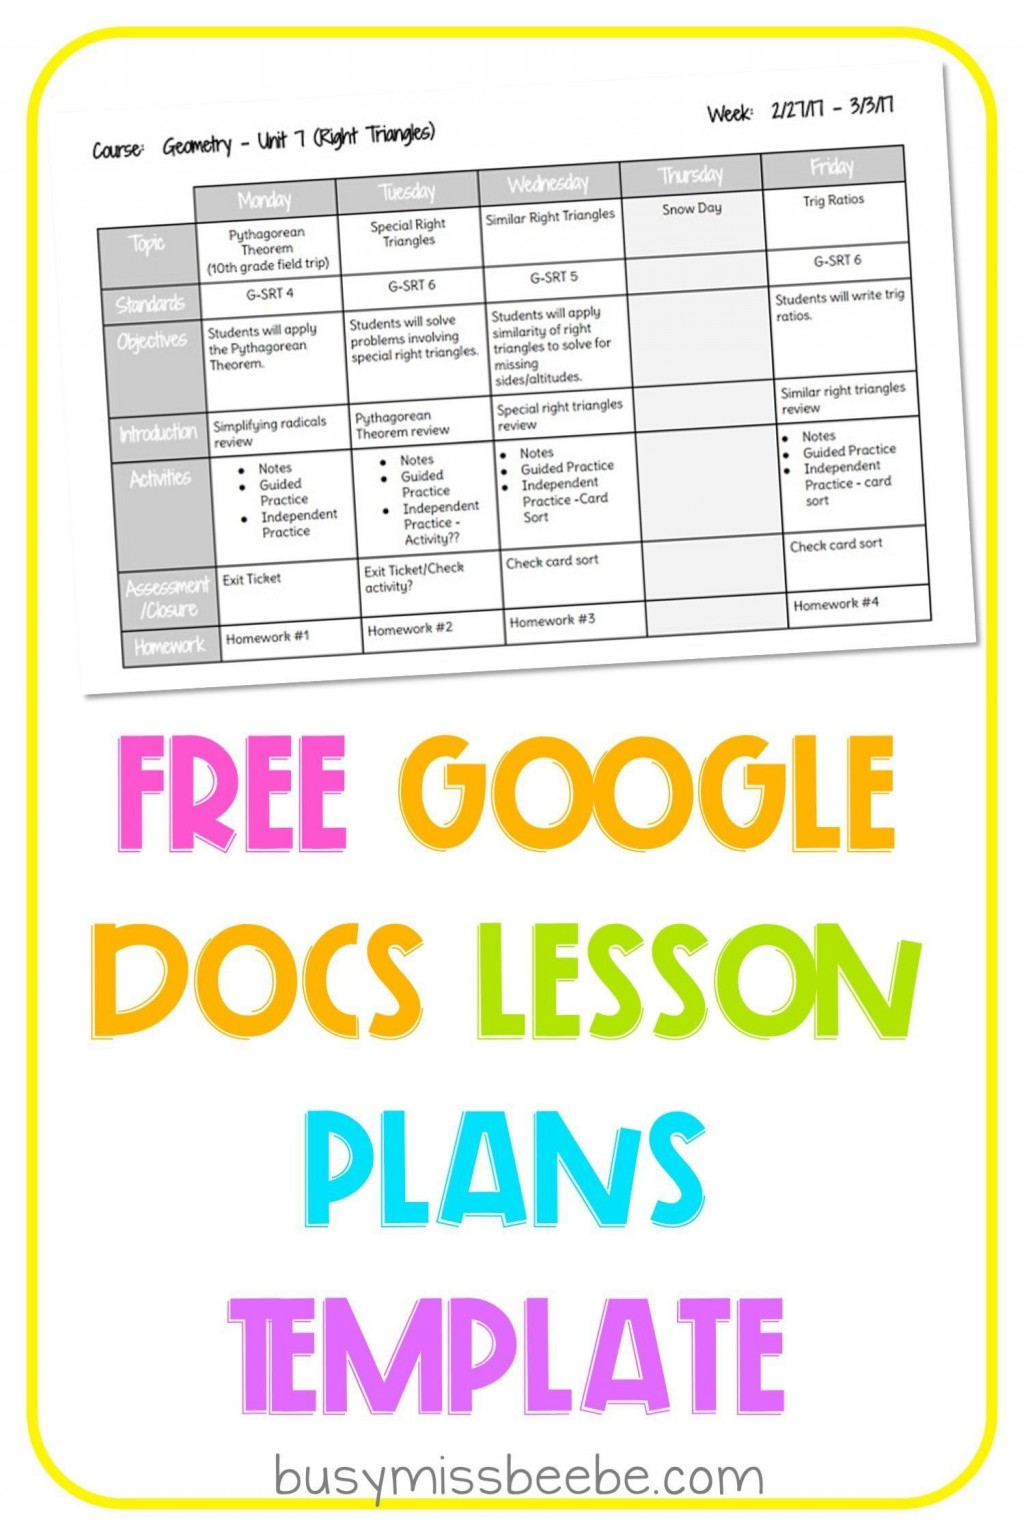 000 Best Weekly Lesson Plan Template Google Doc Free High Resolution Large